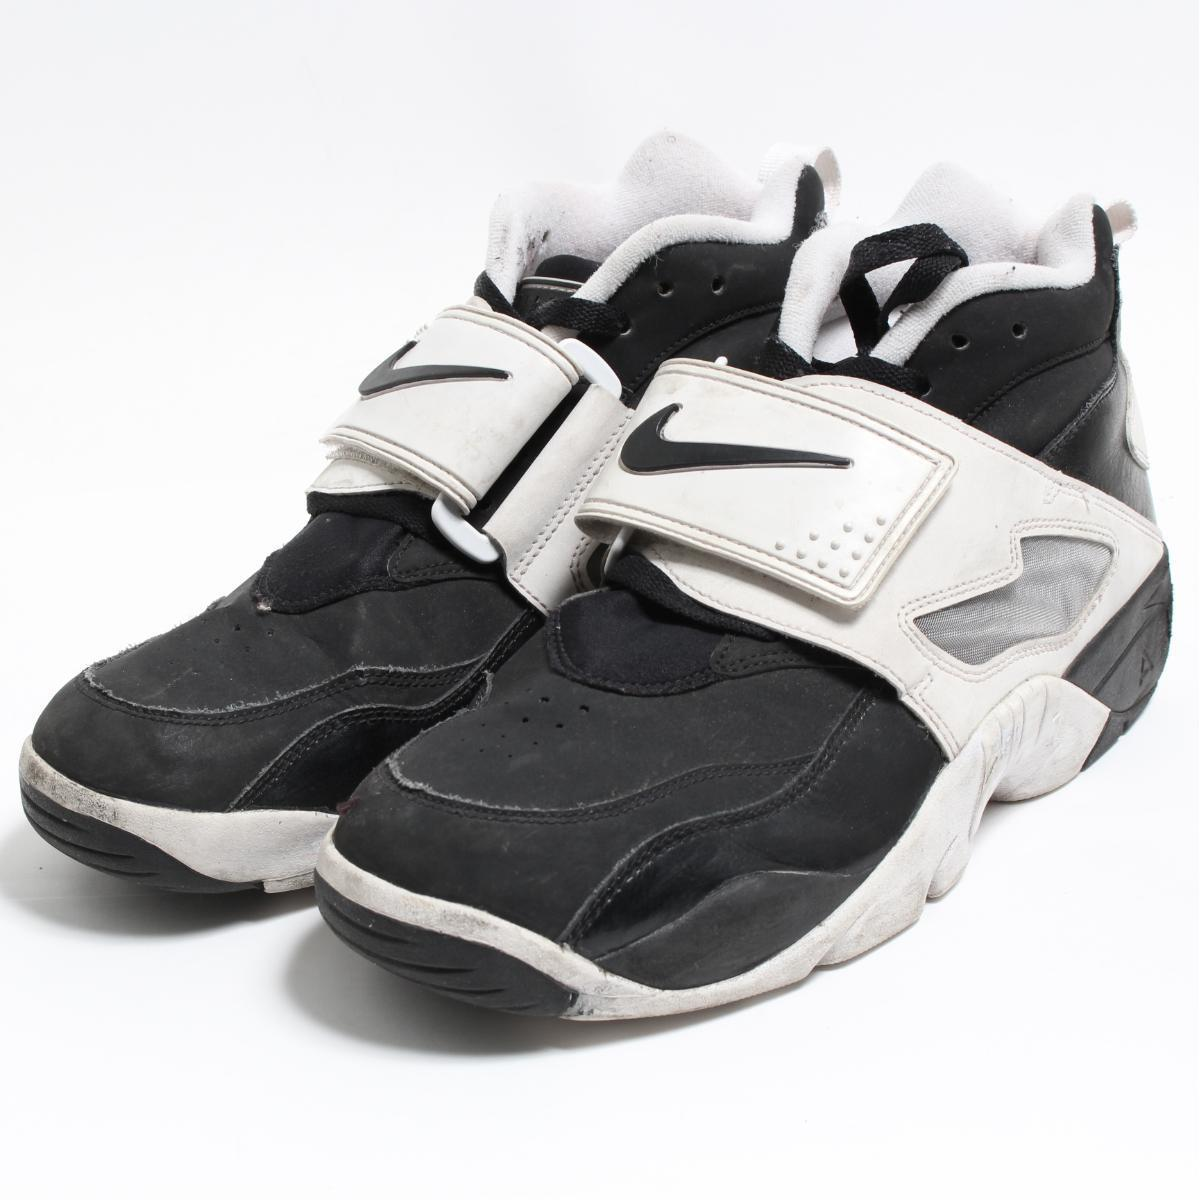 official photos 5b470 3800b Nike NIKE AIR DIAMOND TURF sneakers US10 .5 mens 28.5cm bon4746